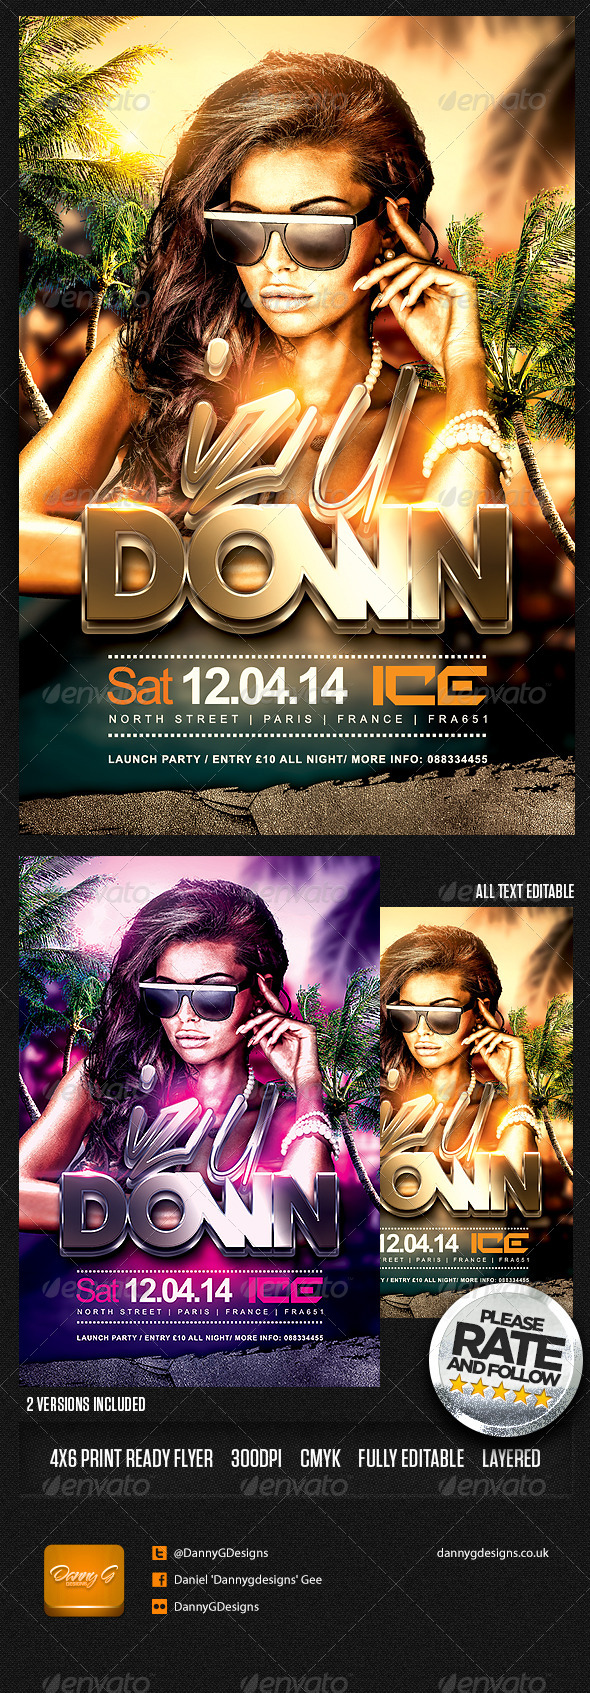 Iz U Down Flyer Template PSD - Clubs & Parties Events